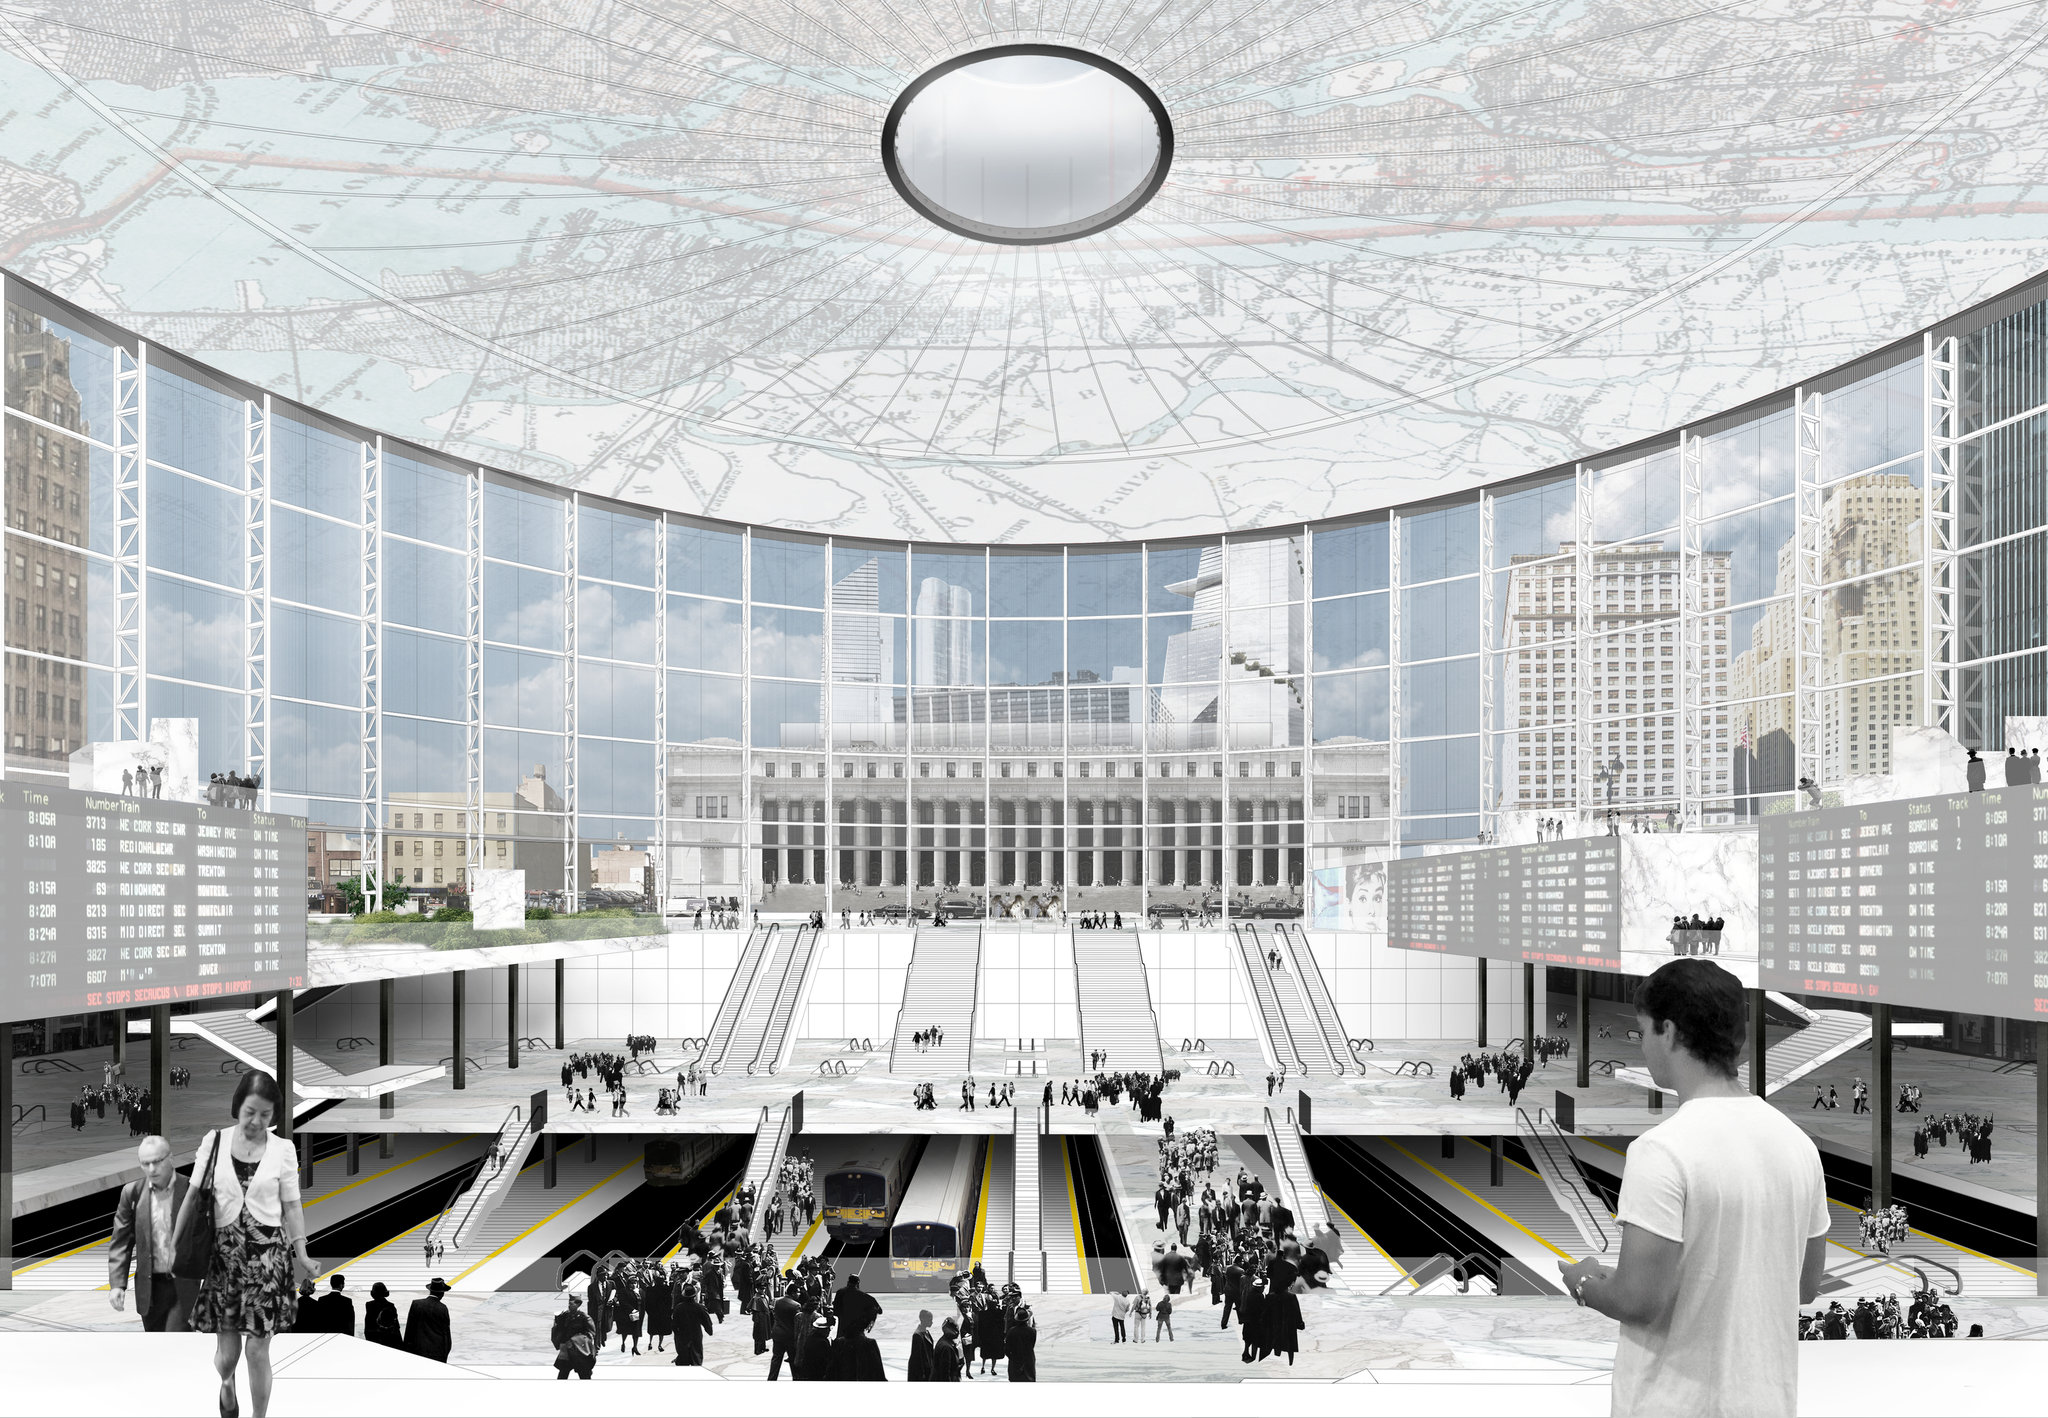 A fanciful rendering of MSG and Penn Station. Credit: NYT.